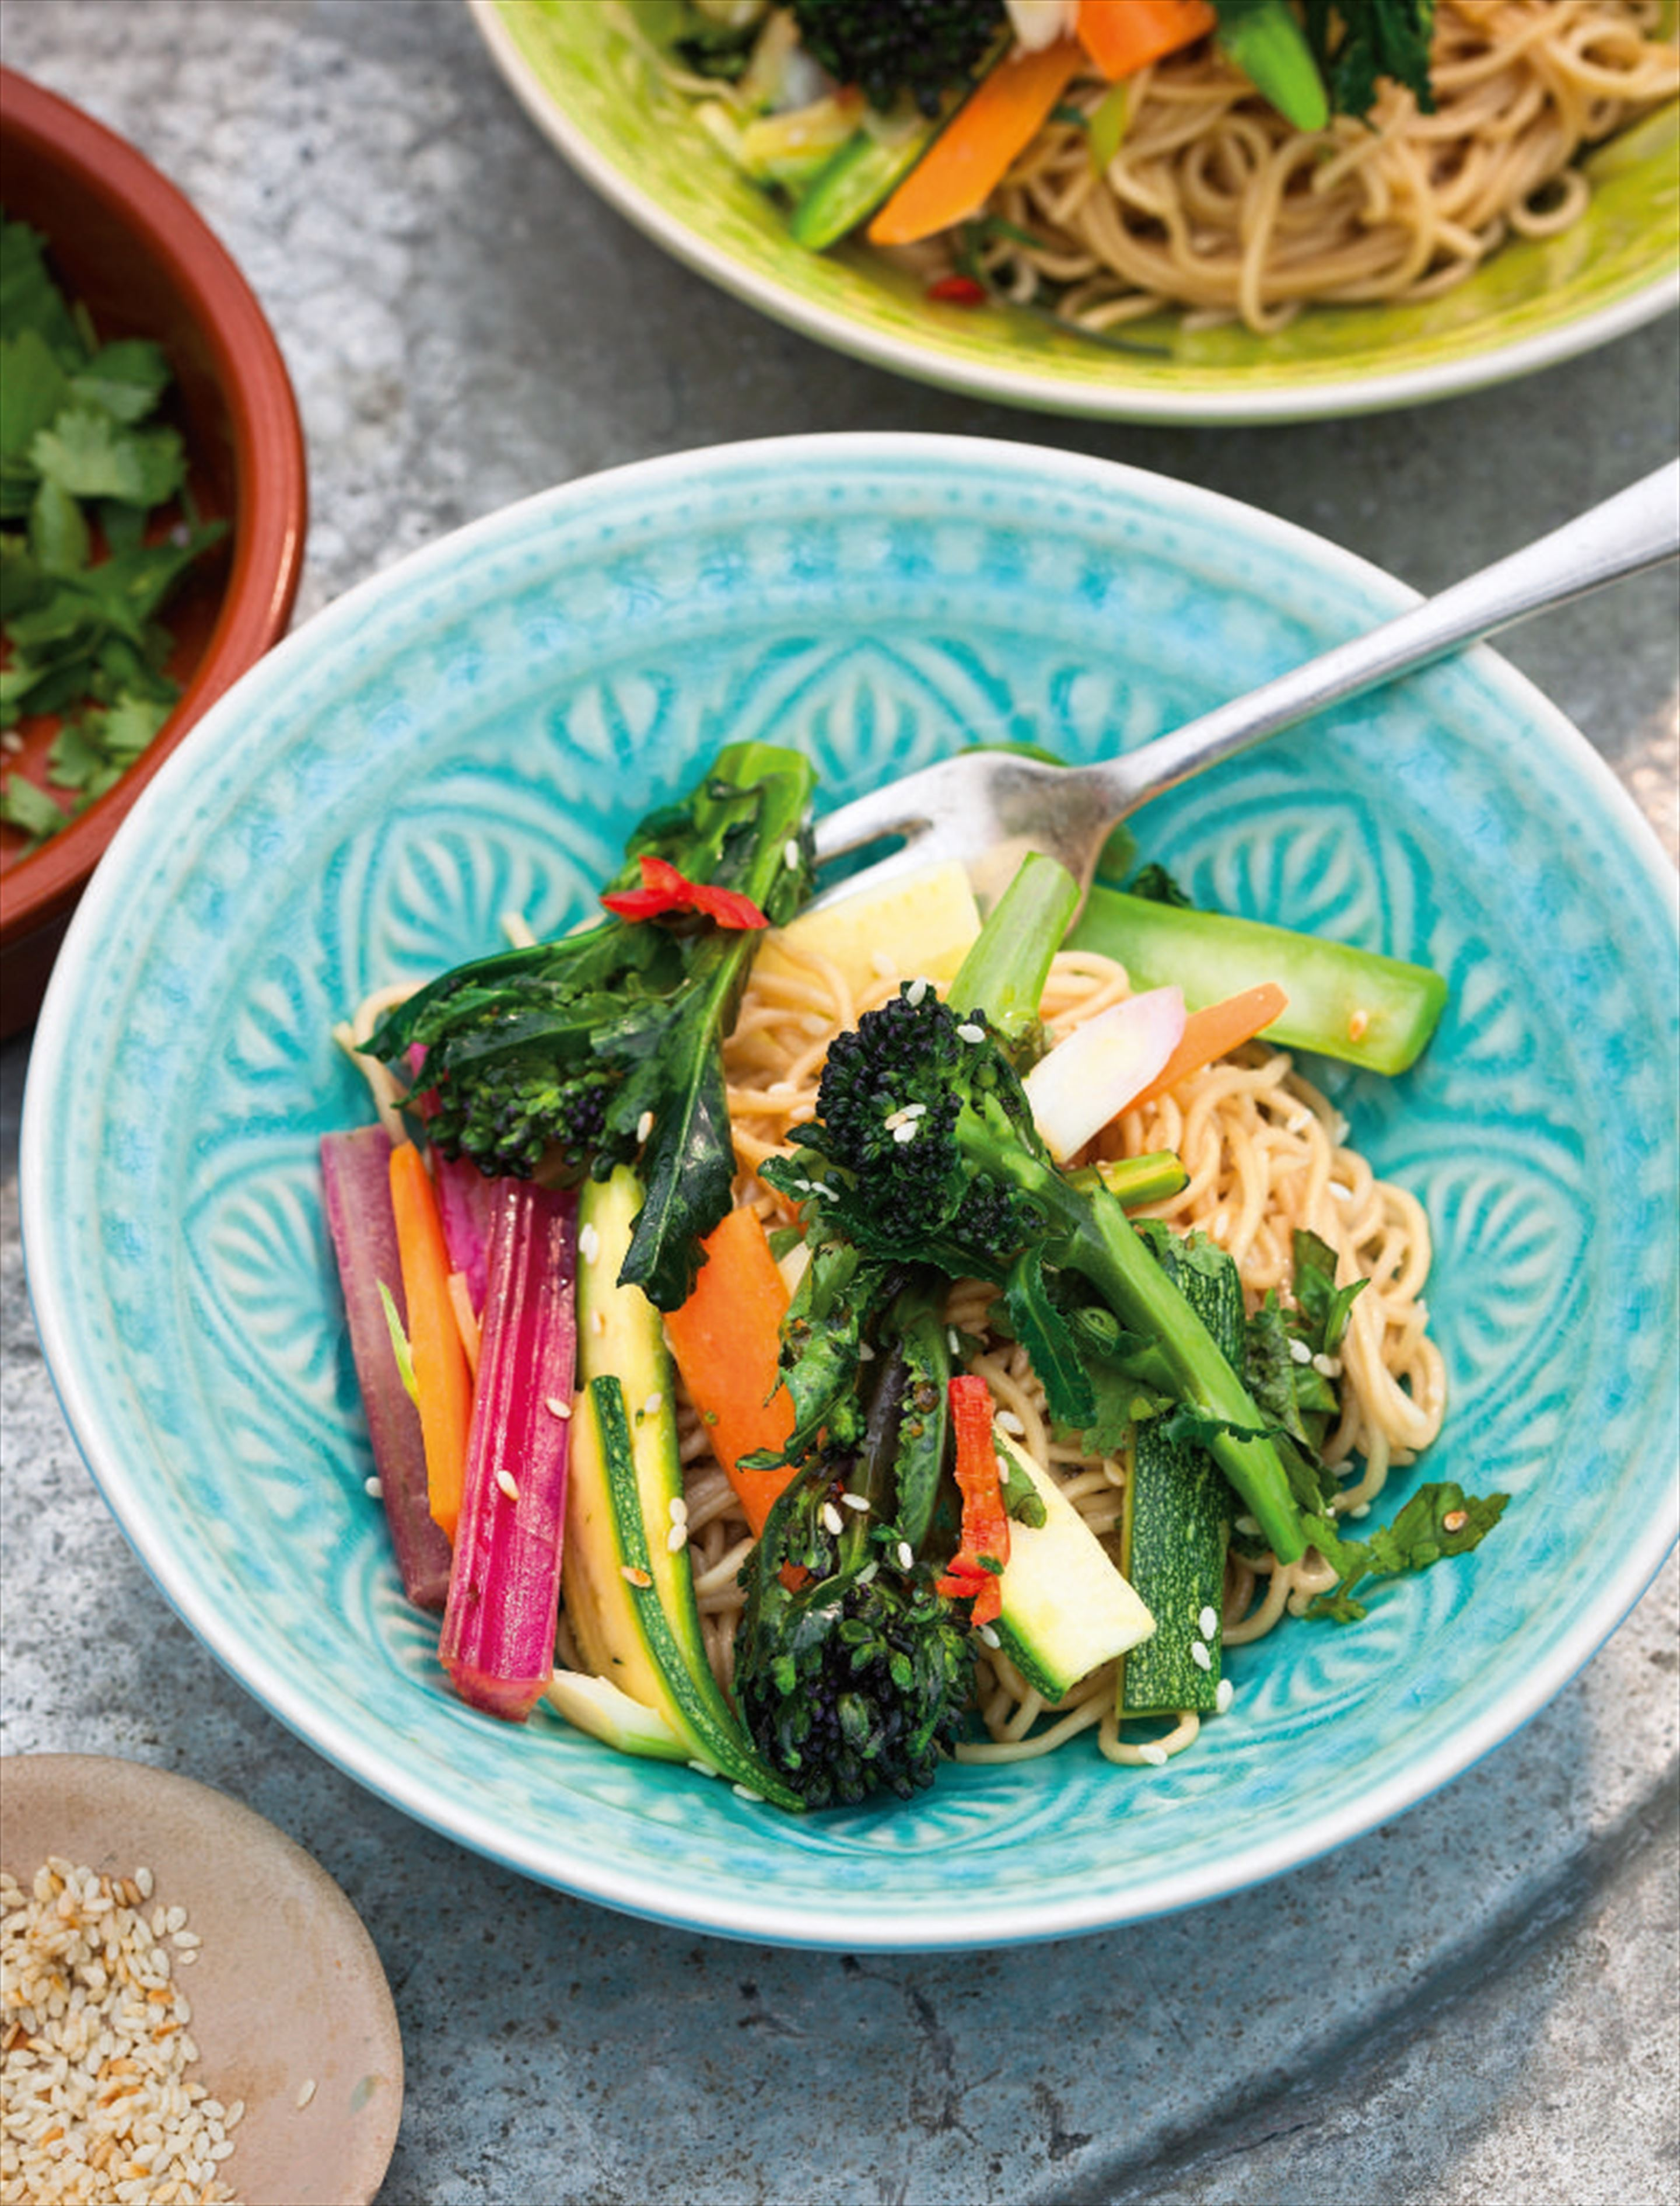 Summer vegetable stir-fry with peanut and sesame noodles